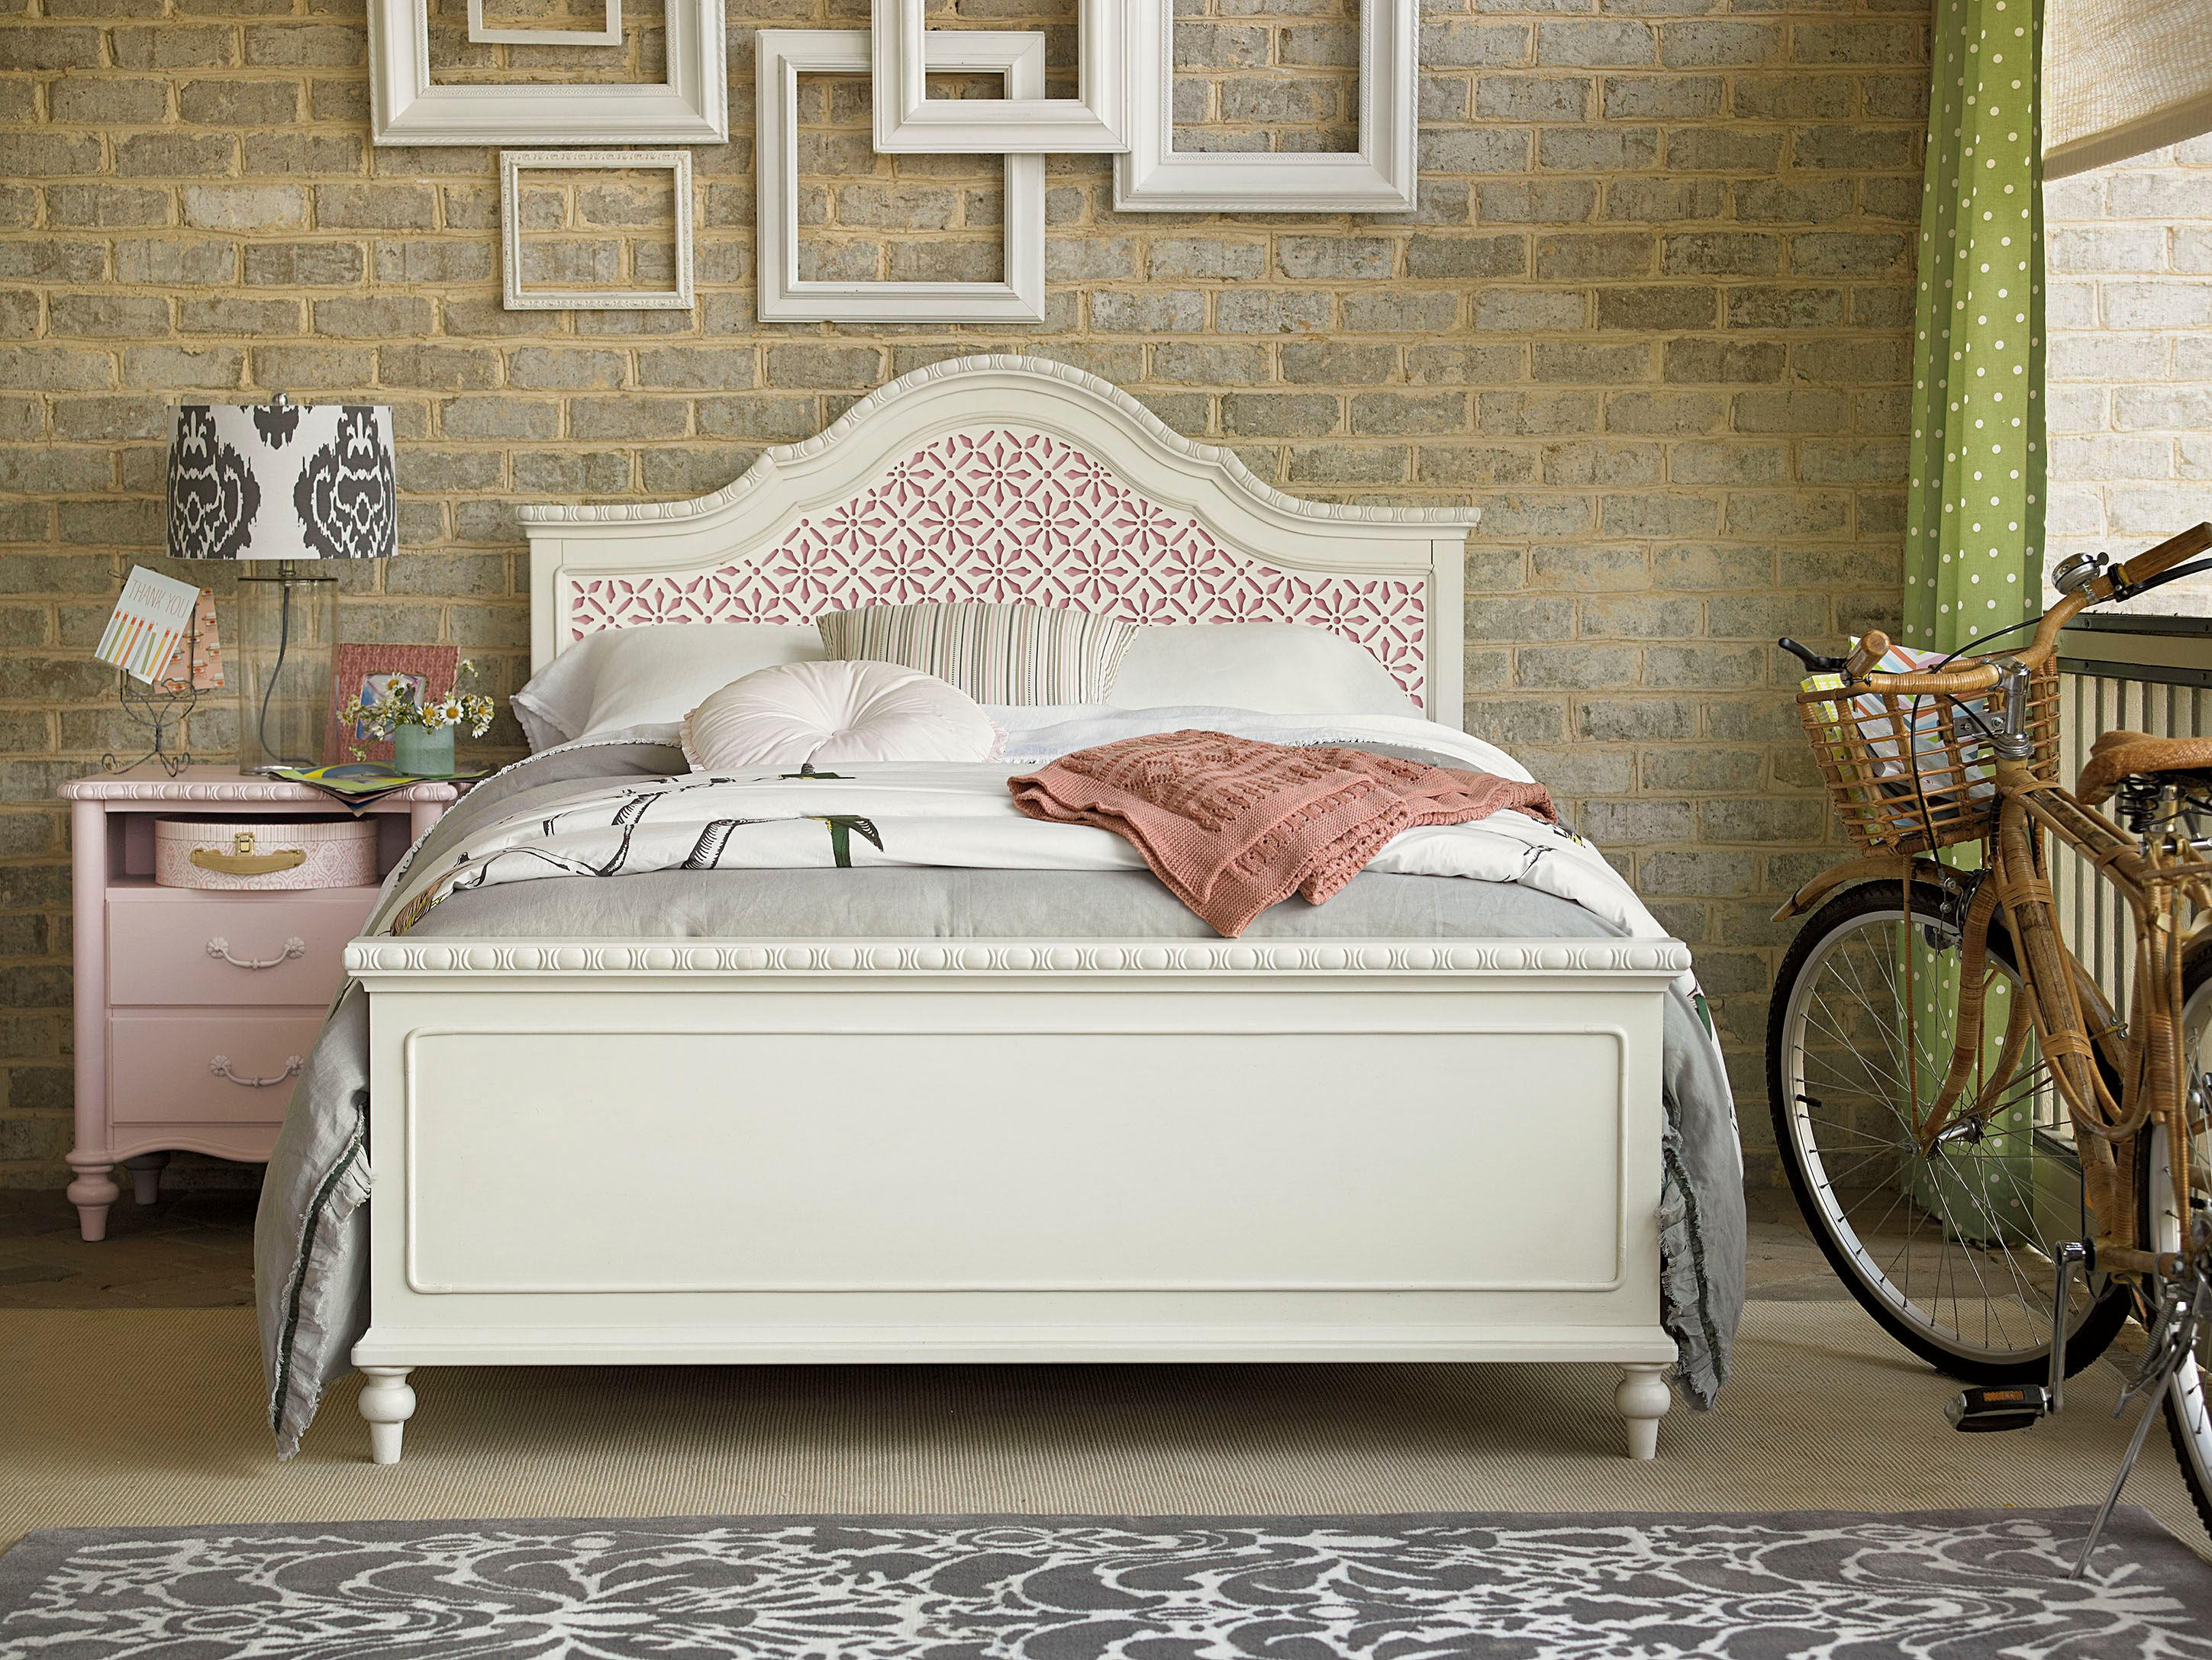 Smartstuff Bellamy Full Trellis Bed Bedroom Group - Item Number: 330A F Bedroom Group 3